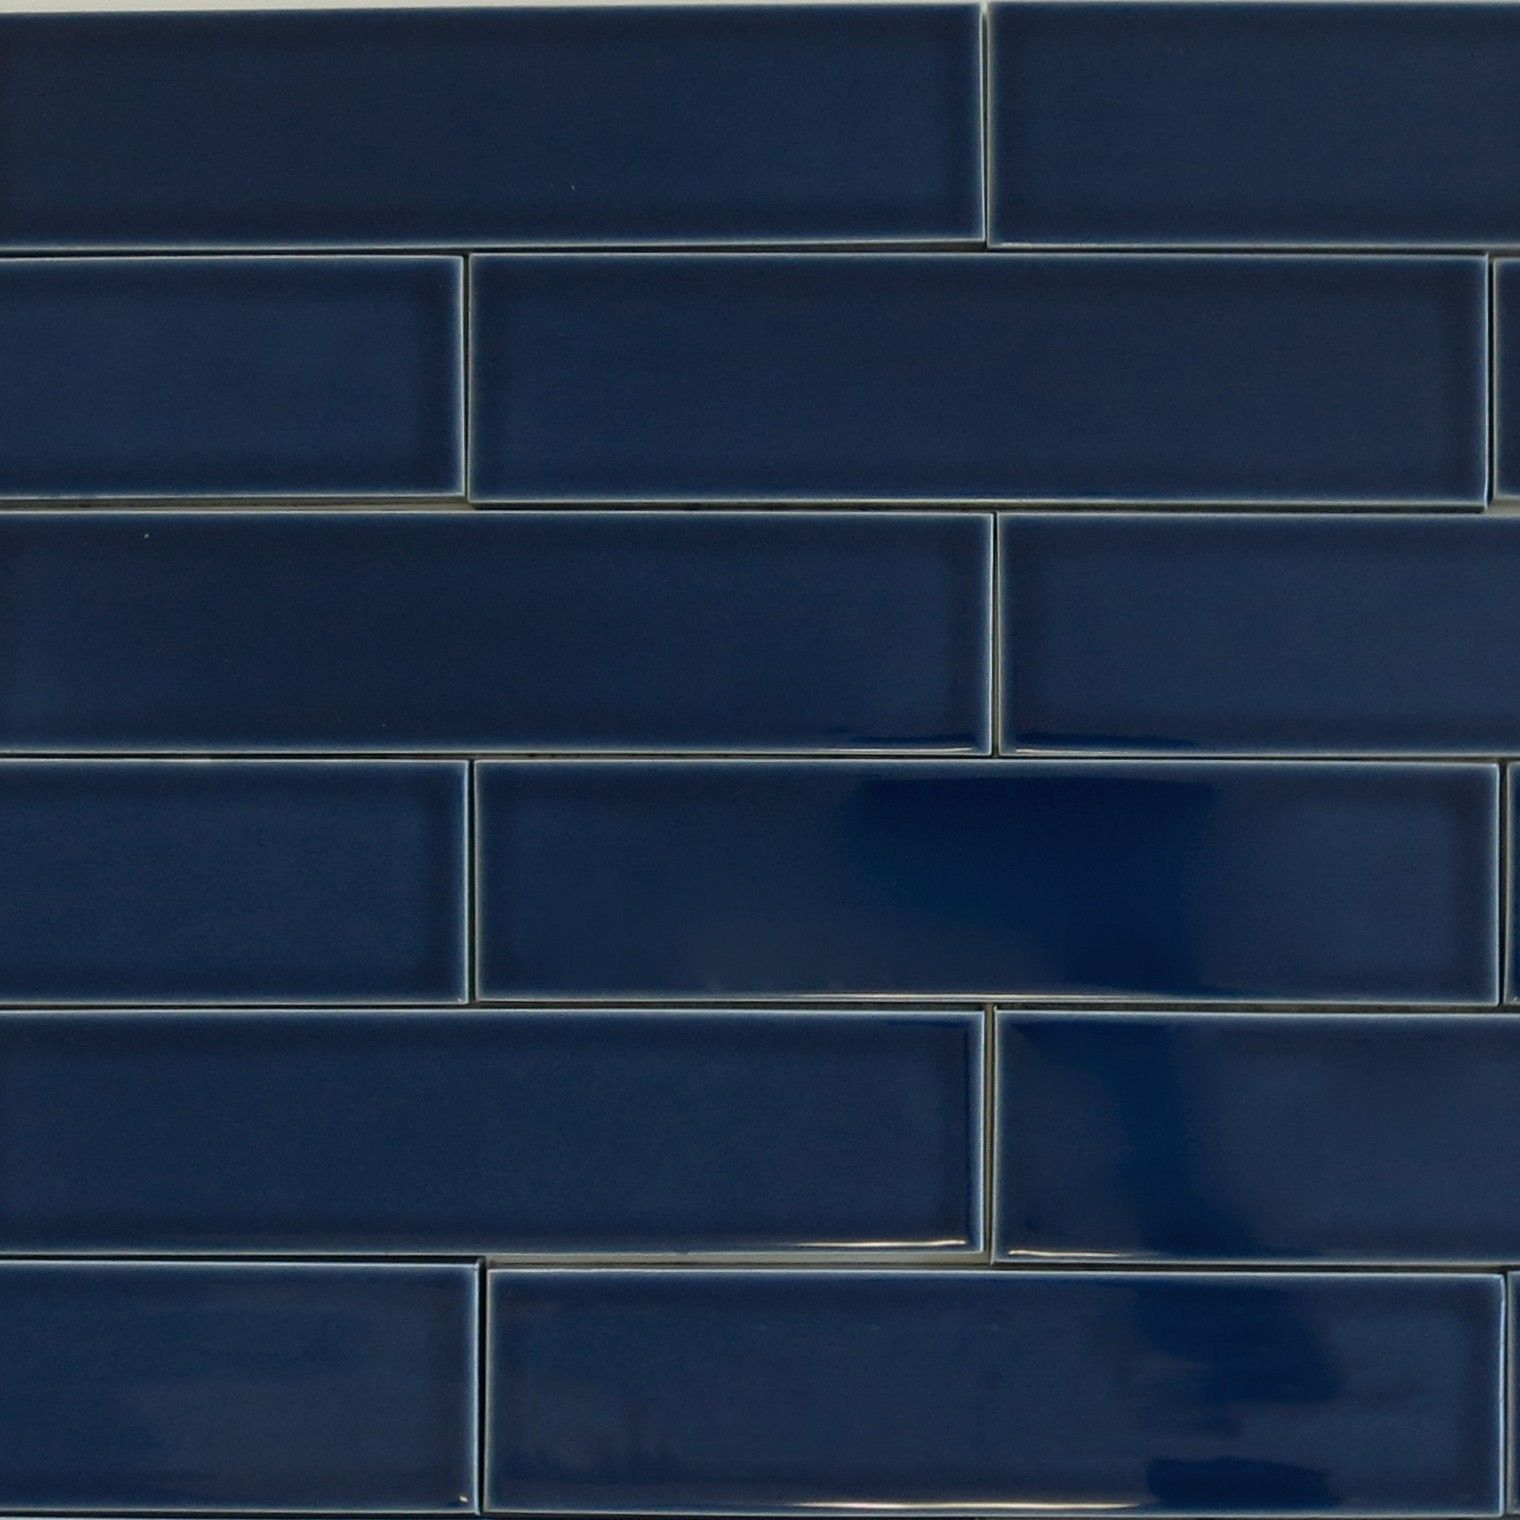 Kiln Ceramic Subway Tile Caspian Blue | Modwalls Designer Tile ...